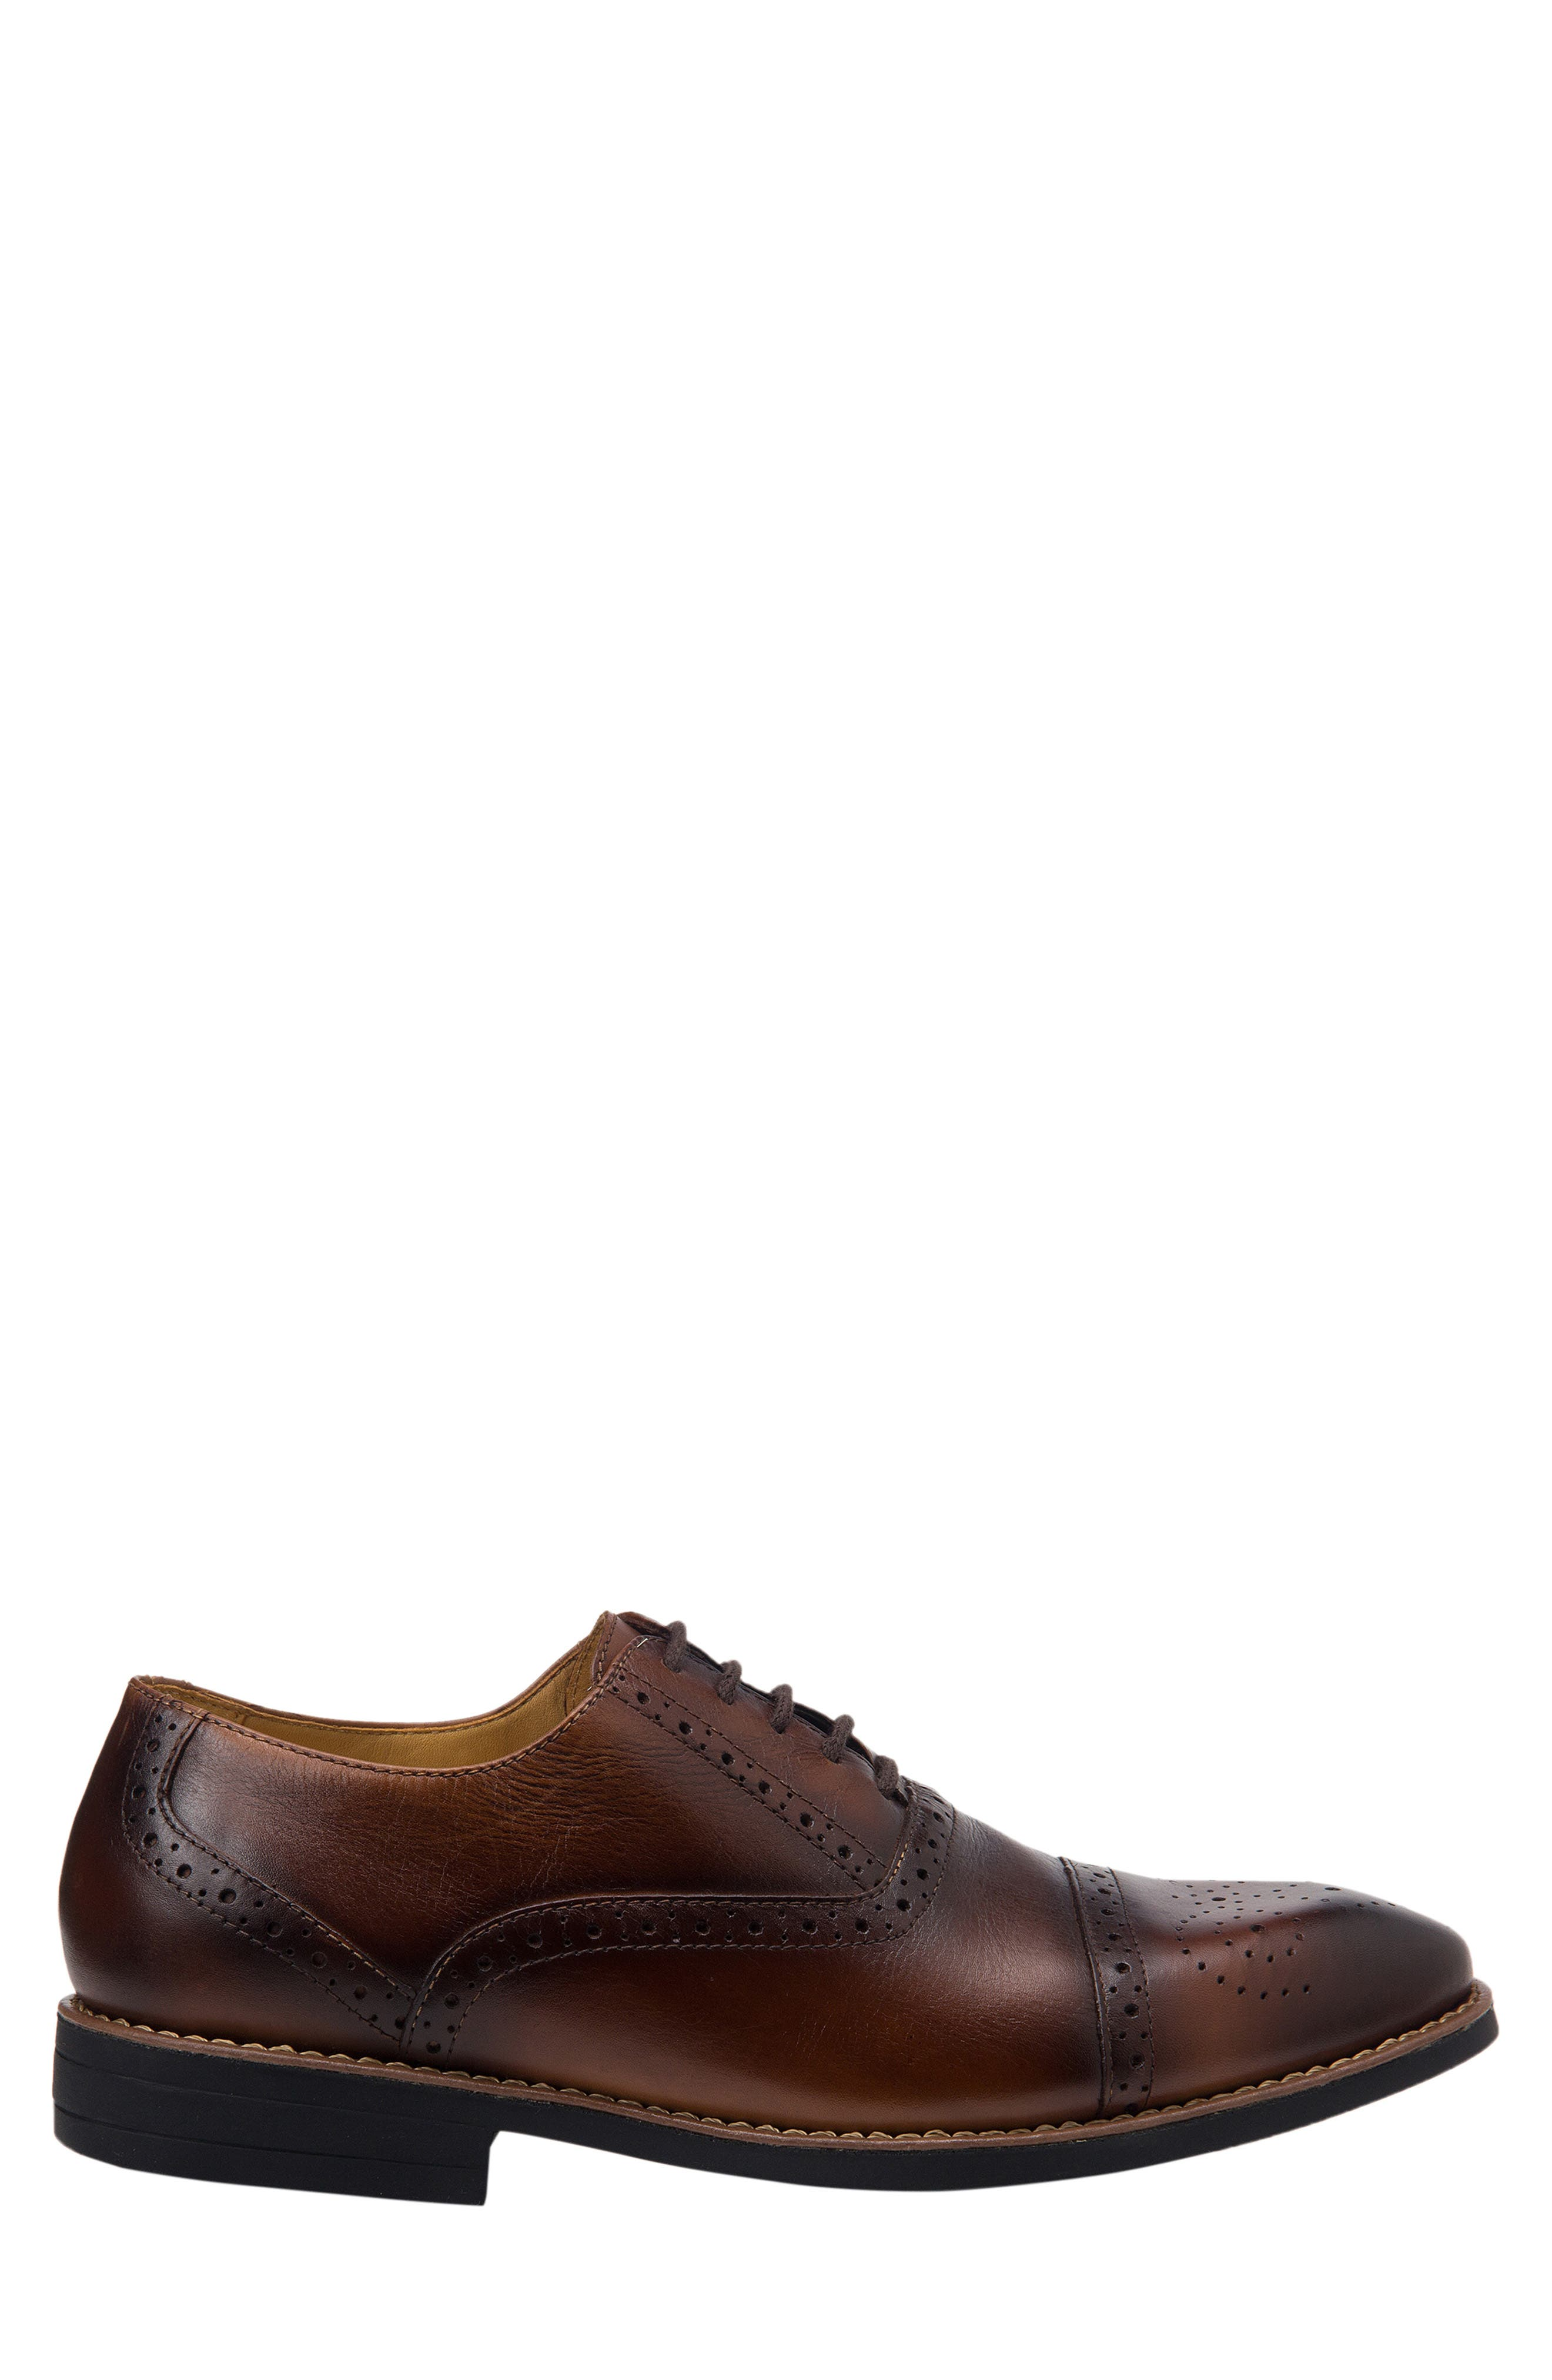 SANDRO MOSCOLONI,                             Murali Cap Toe Oxford,                             Alternate thumbnail 3, color,                             BROWN LEATHER